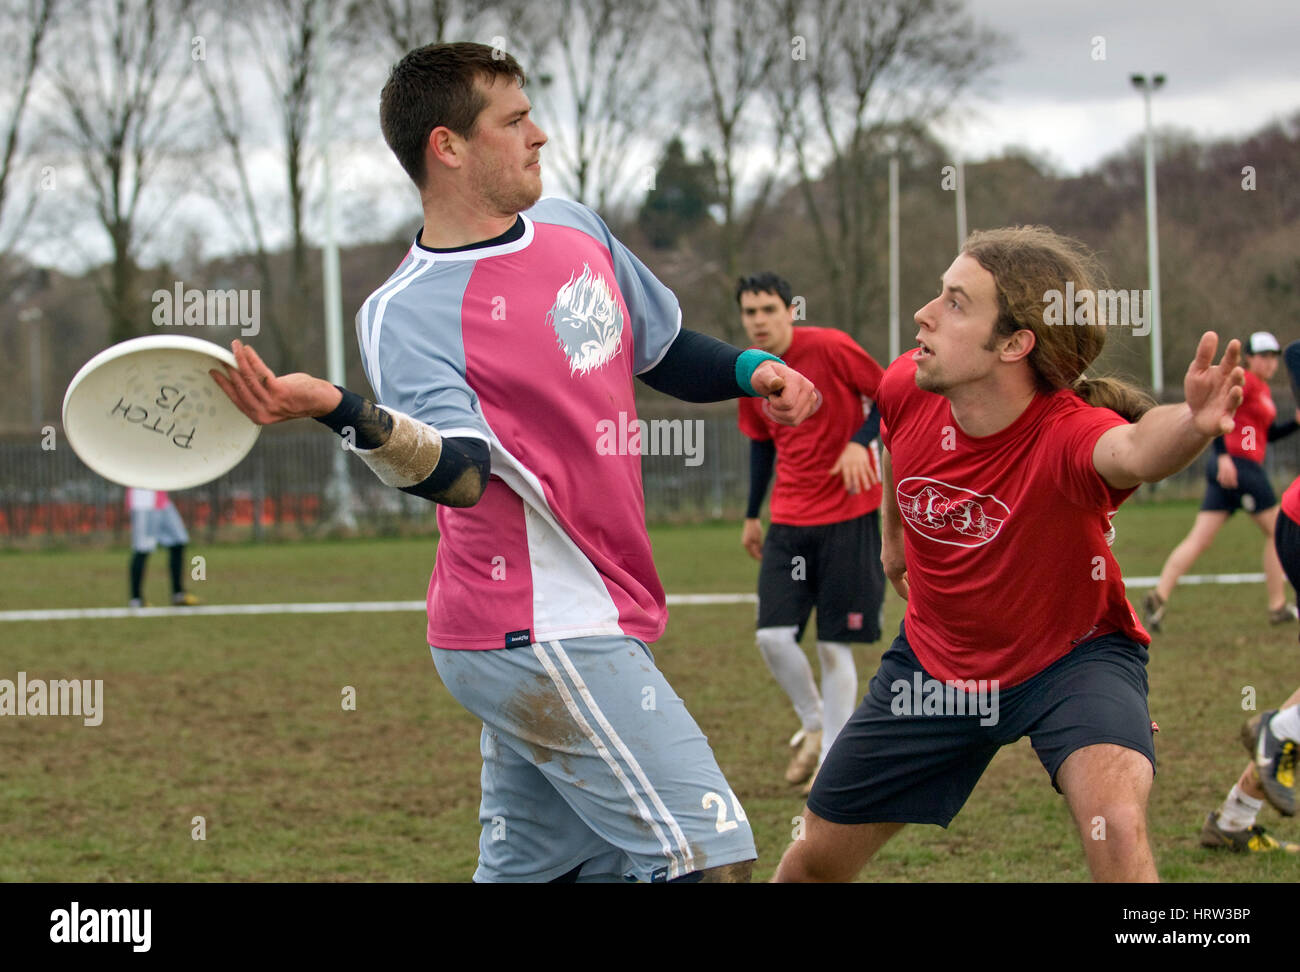 Frisbee team match - Stock Image